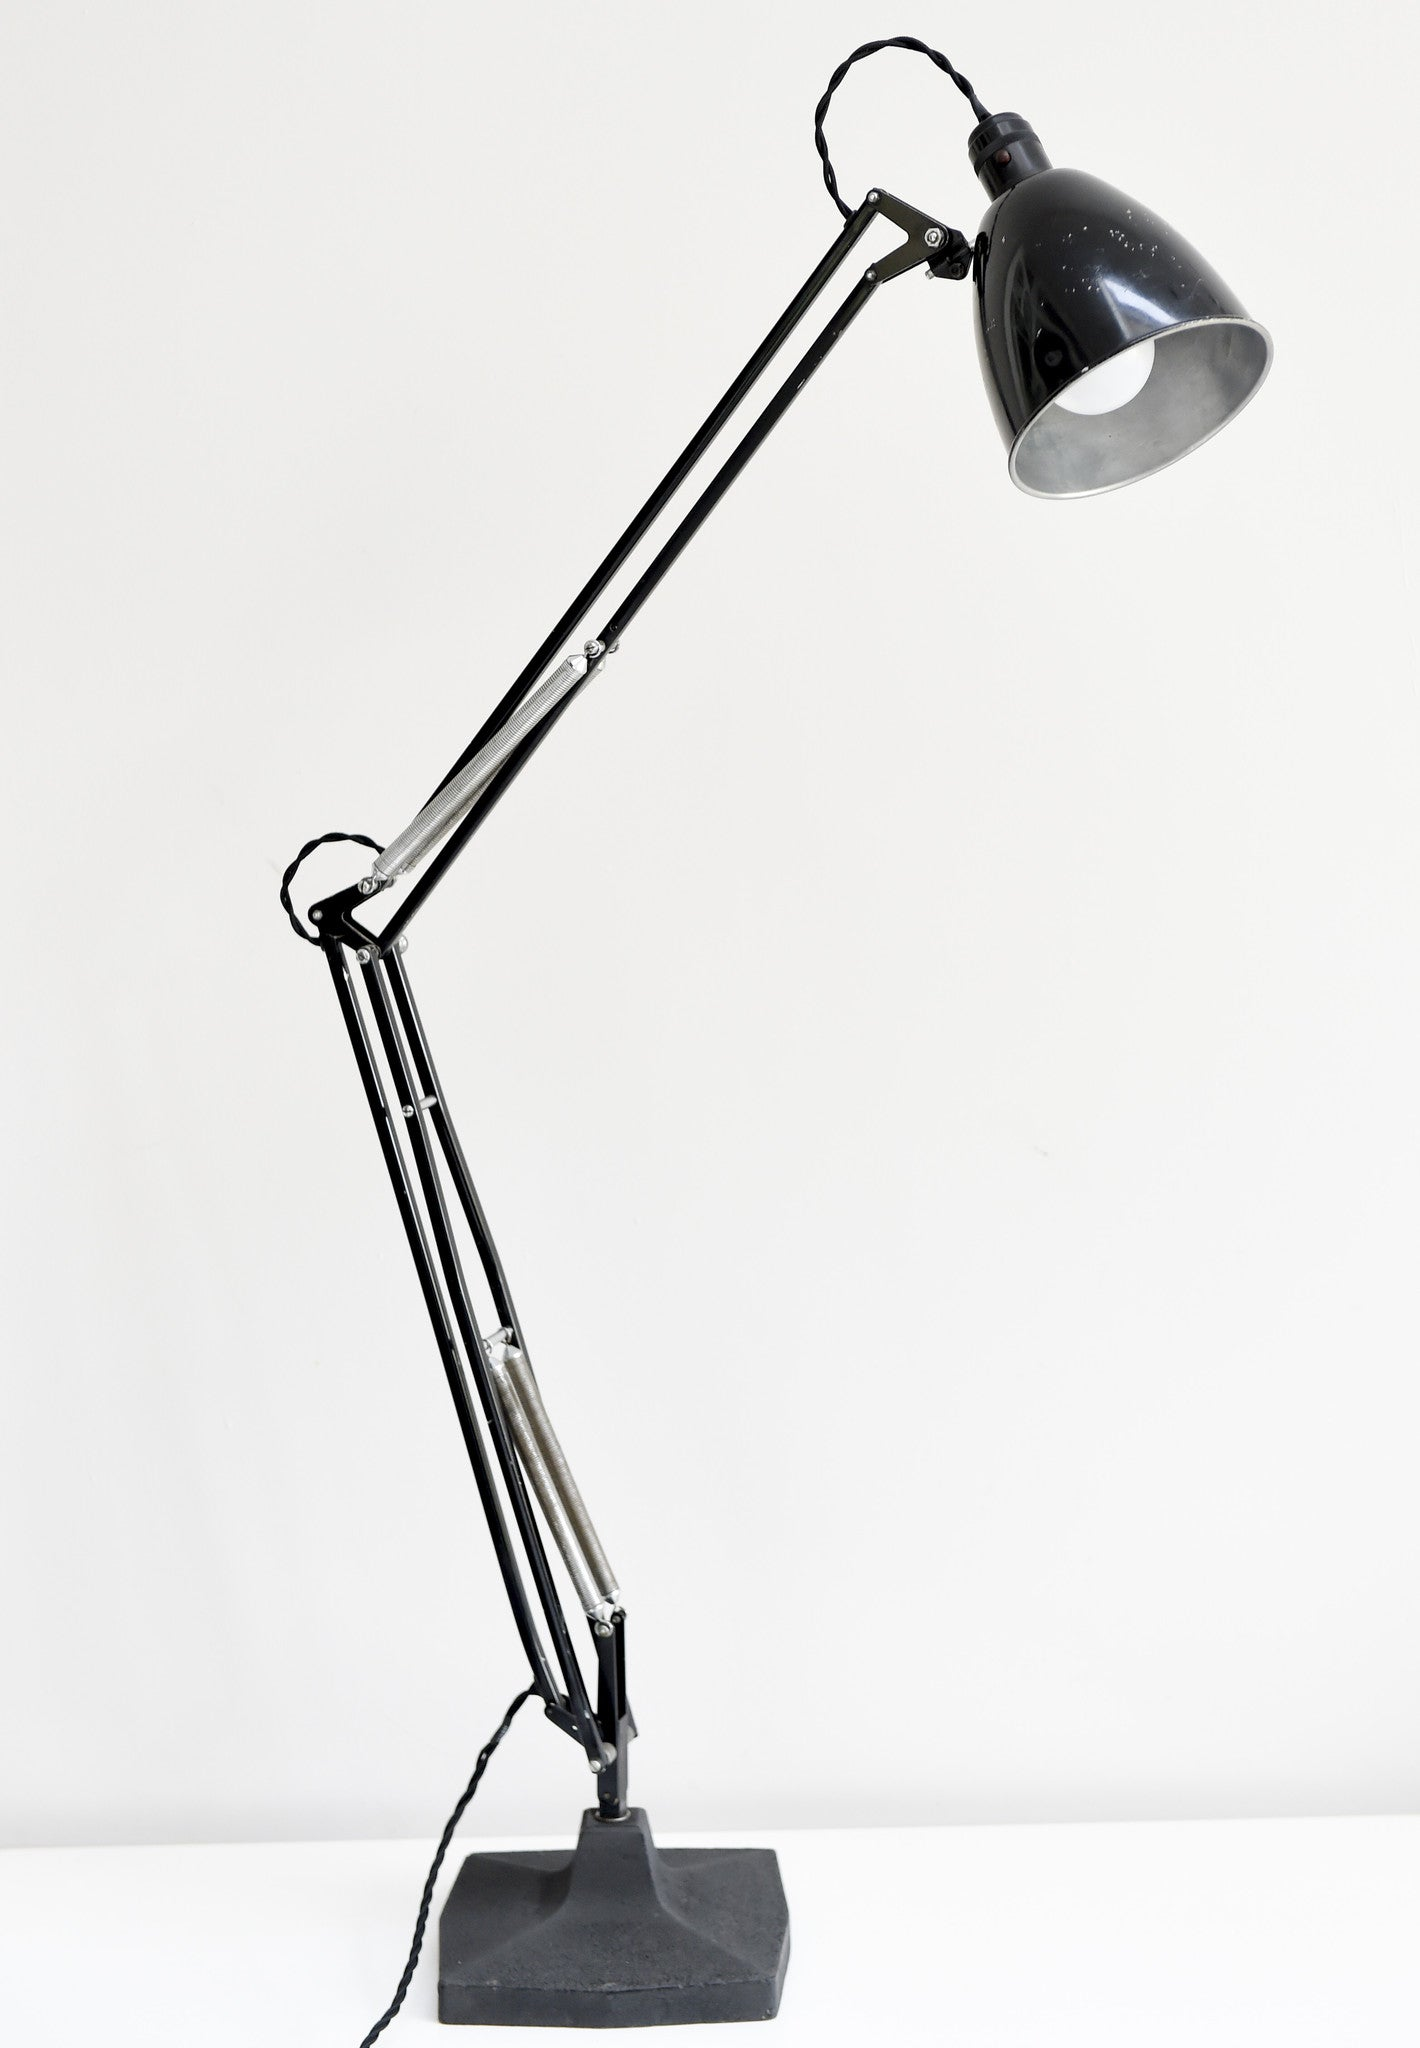 terry herbert home products anglepoise lavish habit lamp img